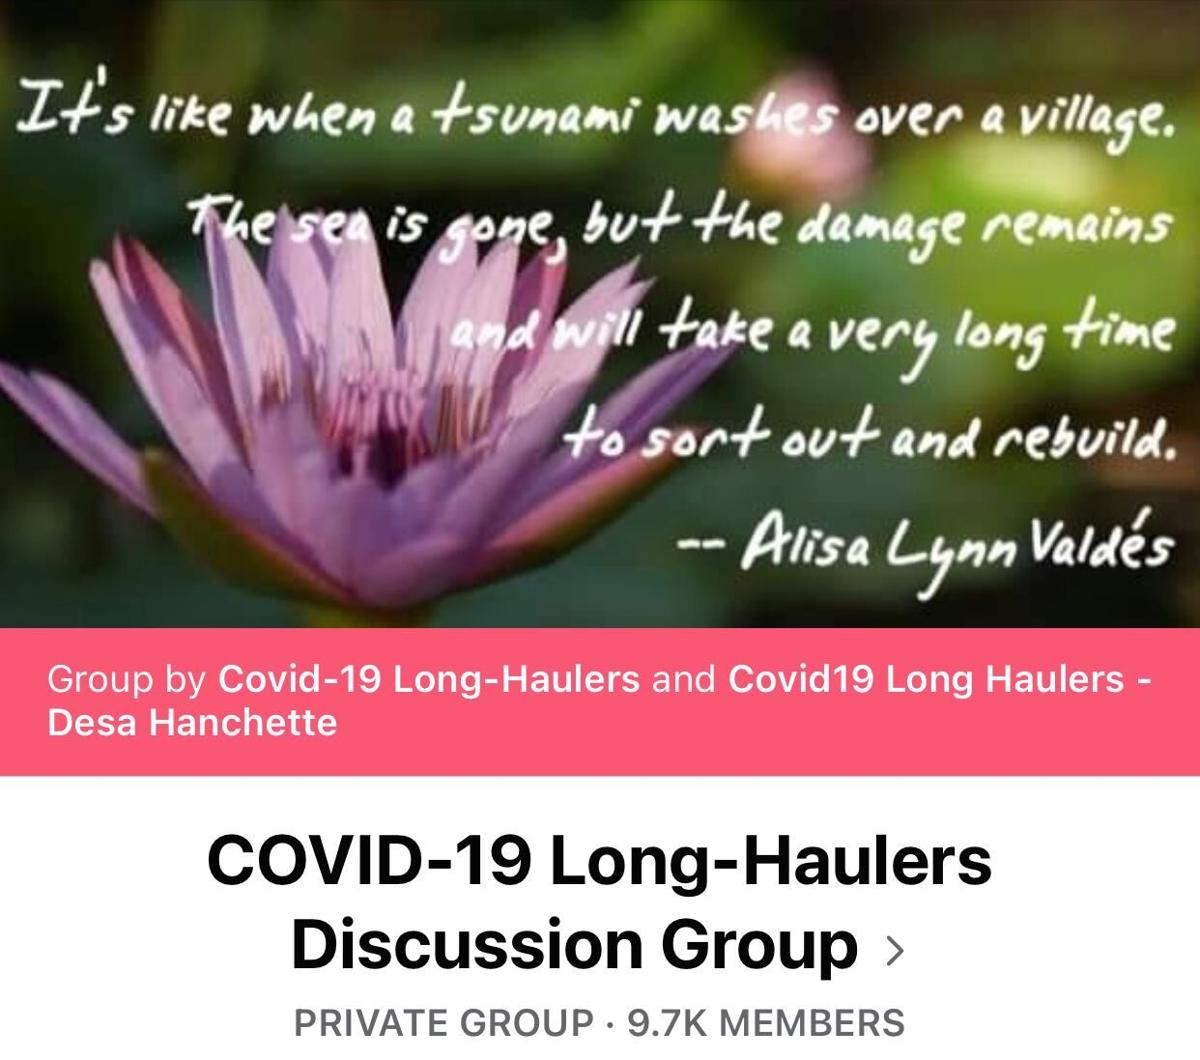 COVID-19 Long-Haulers on Facebook